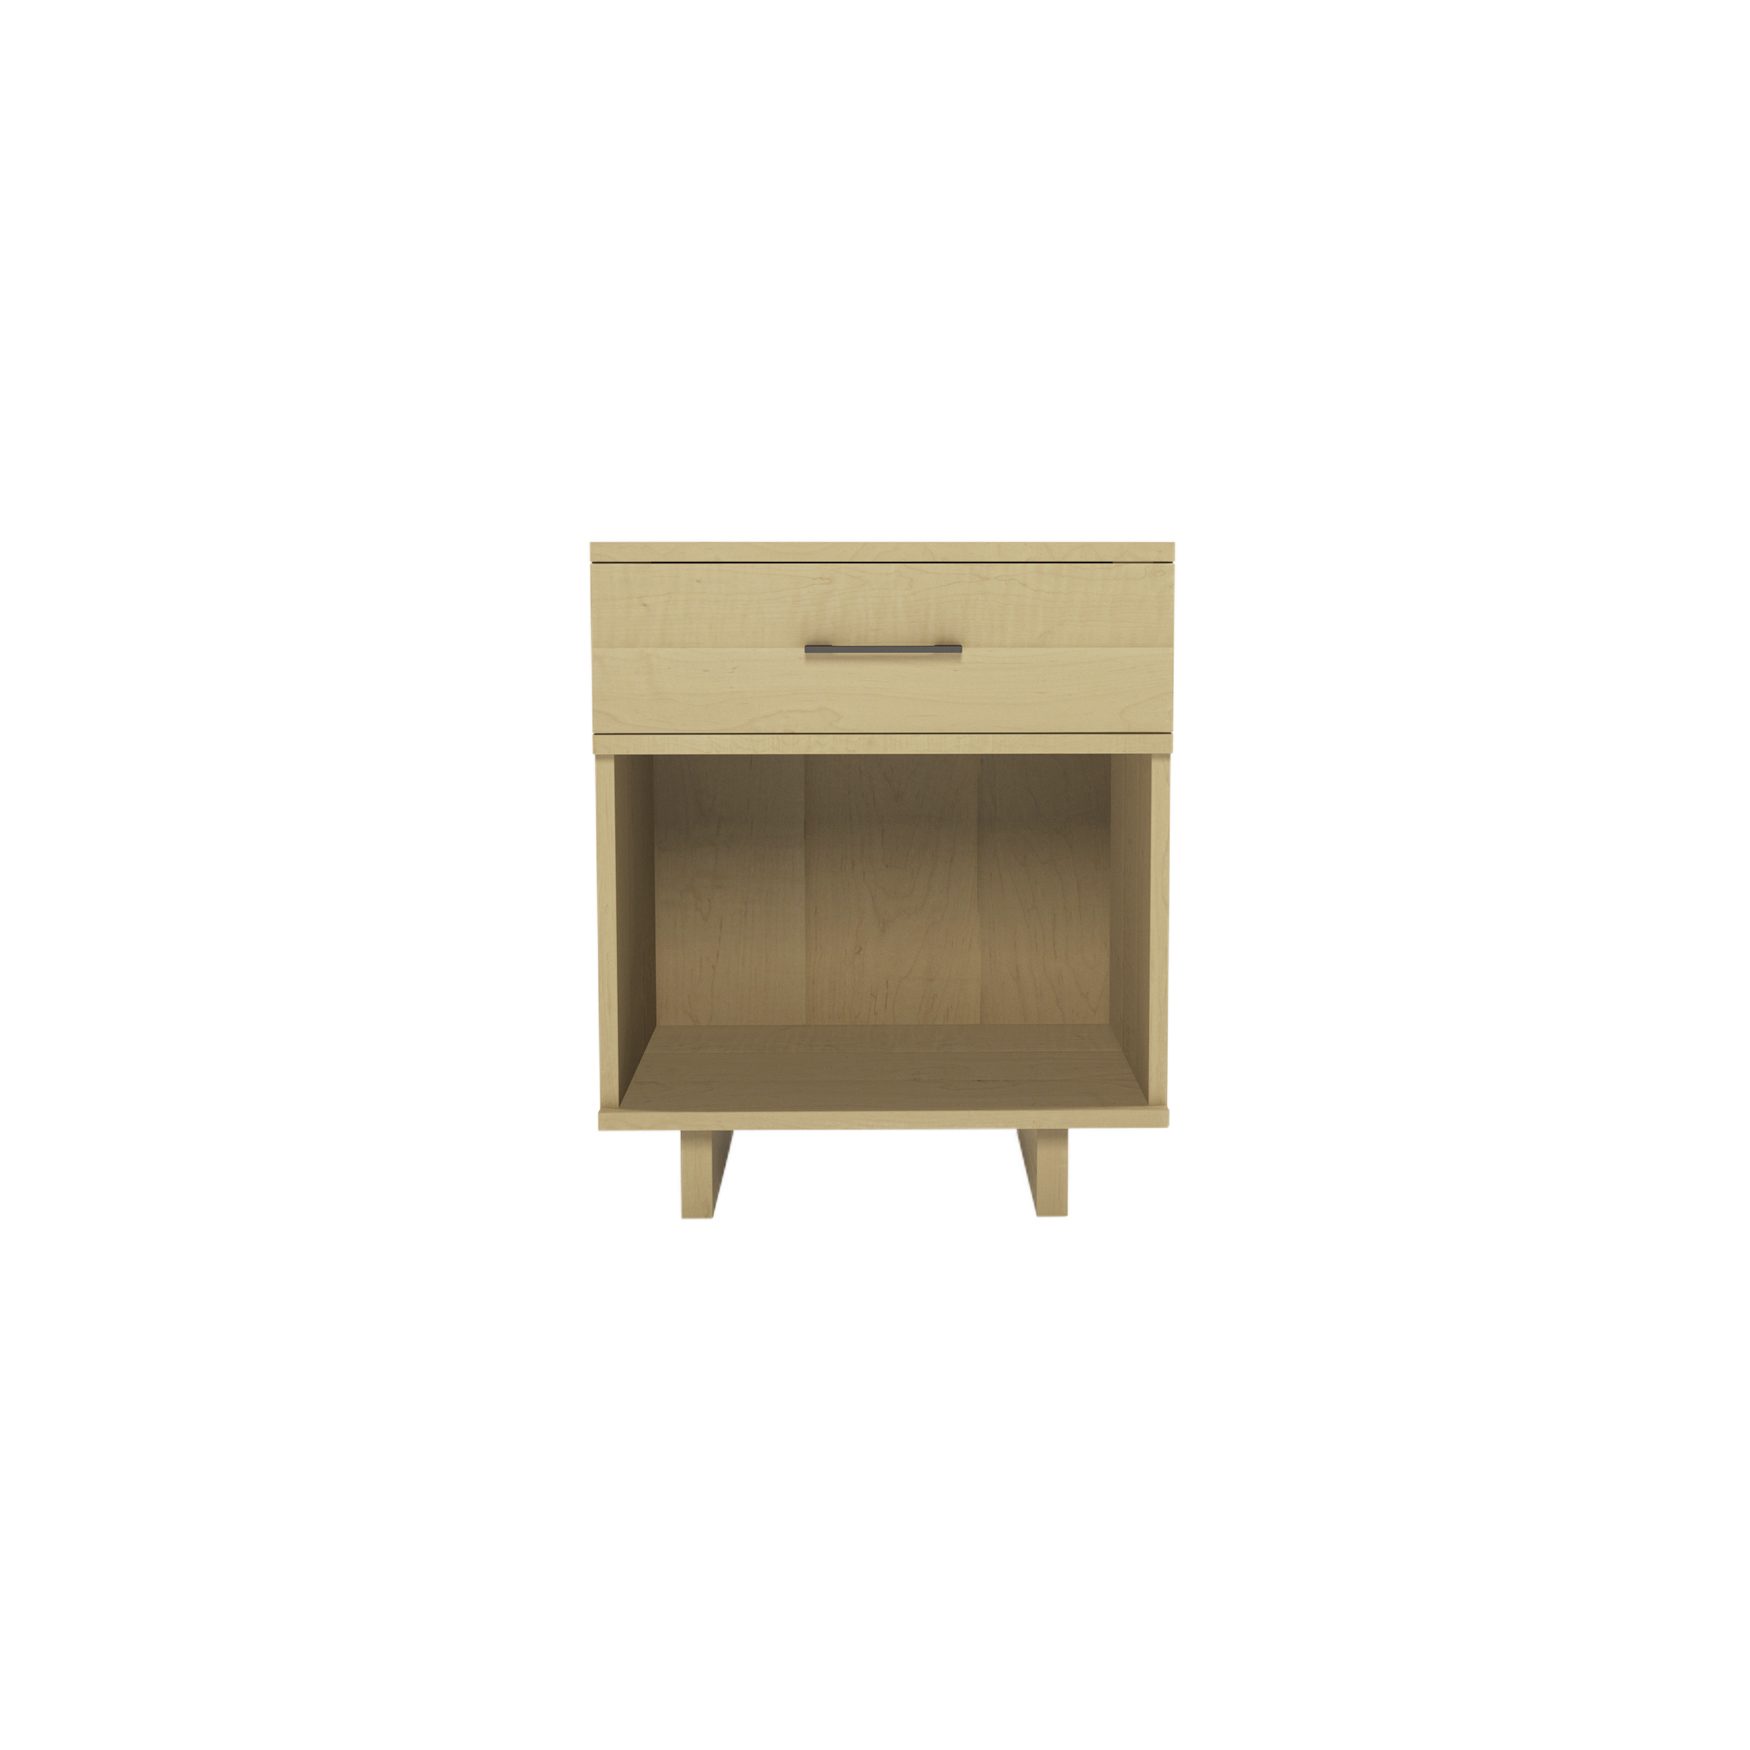 Series 252 Small Bedside Table